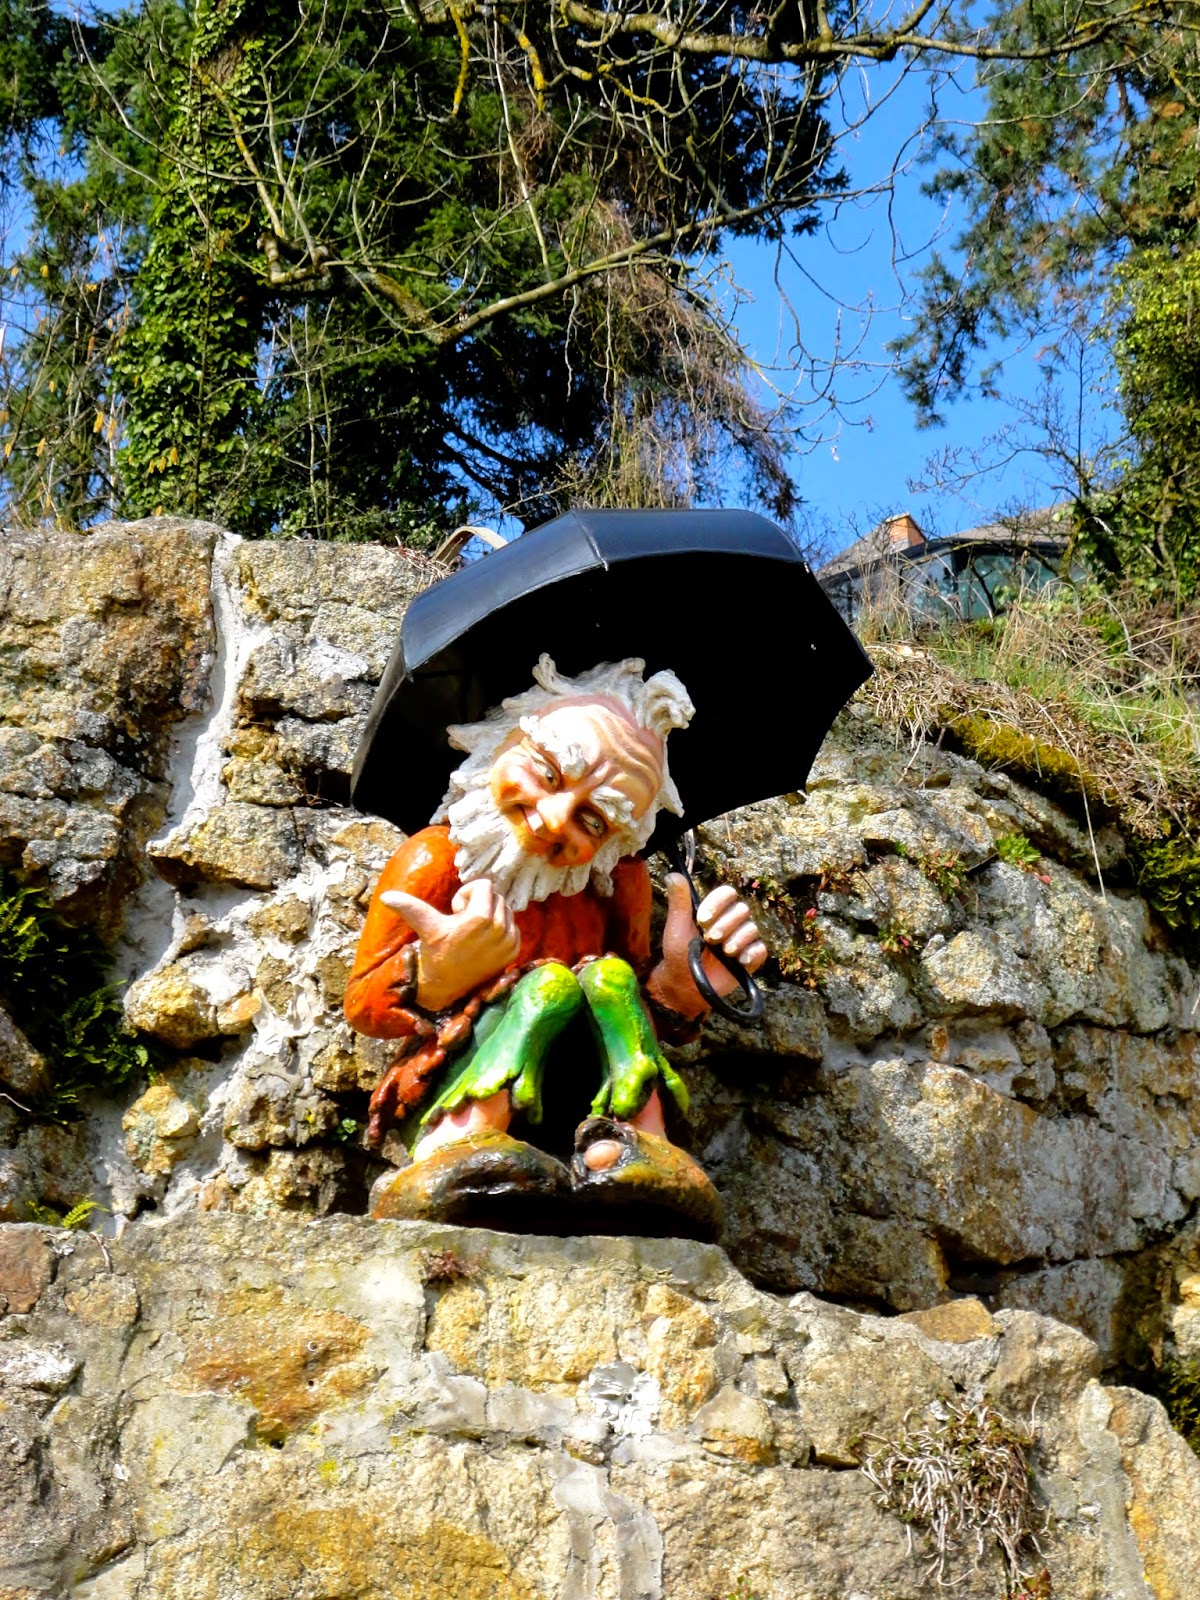 Mountain dwarf statue in Linz, Austria